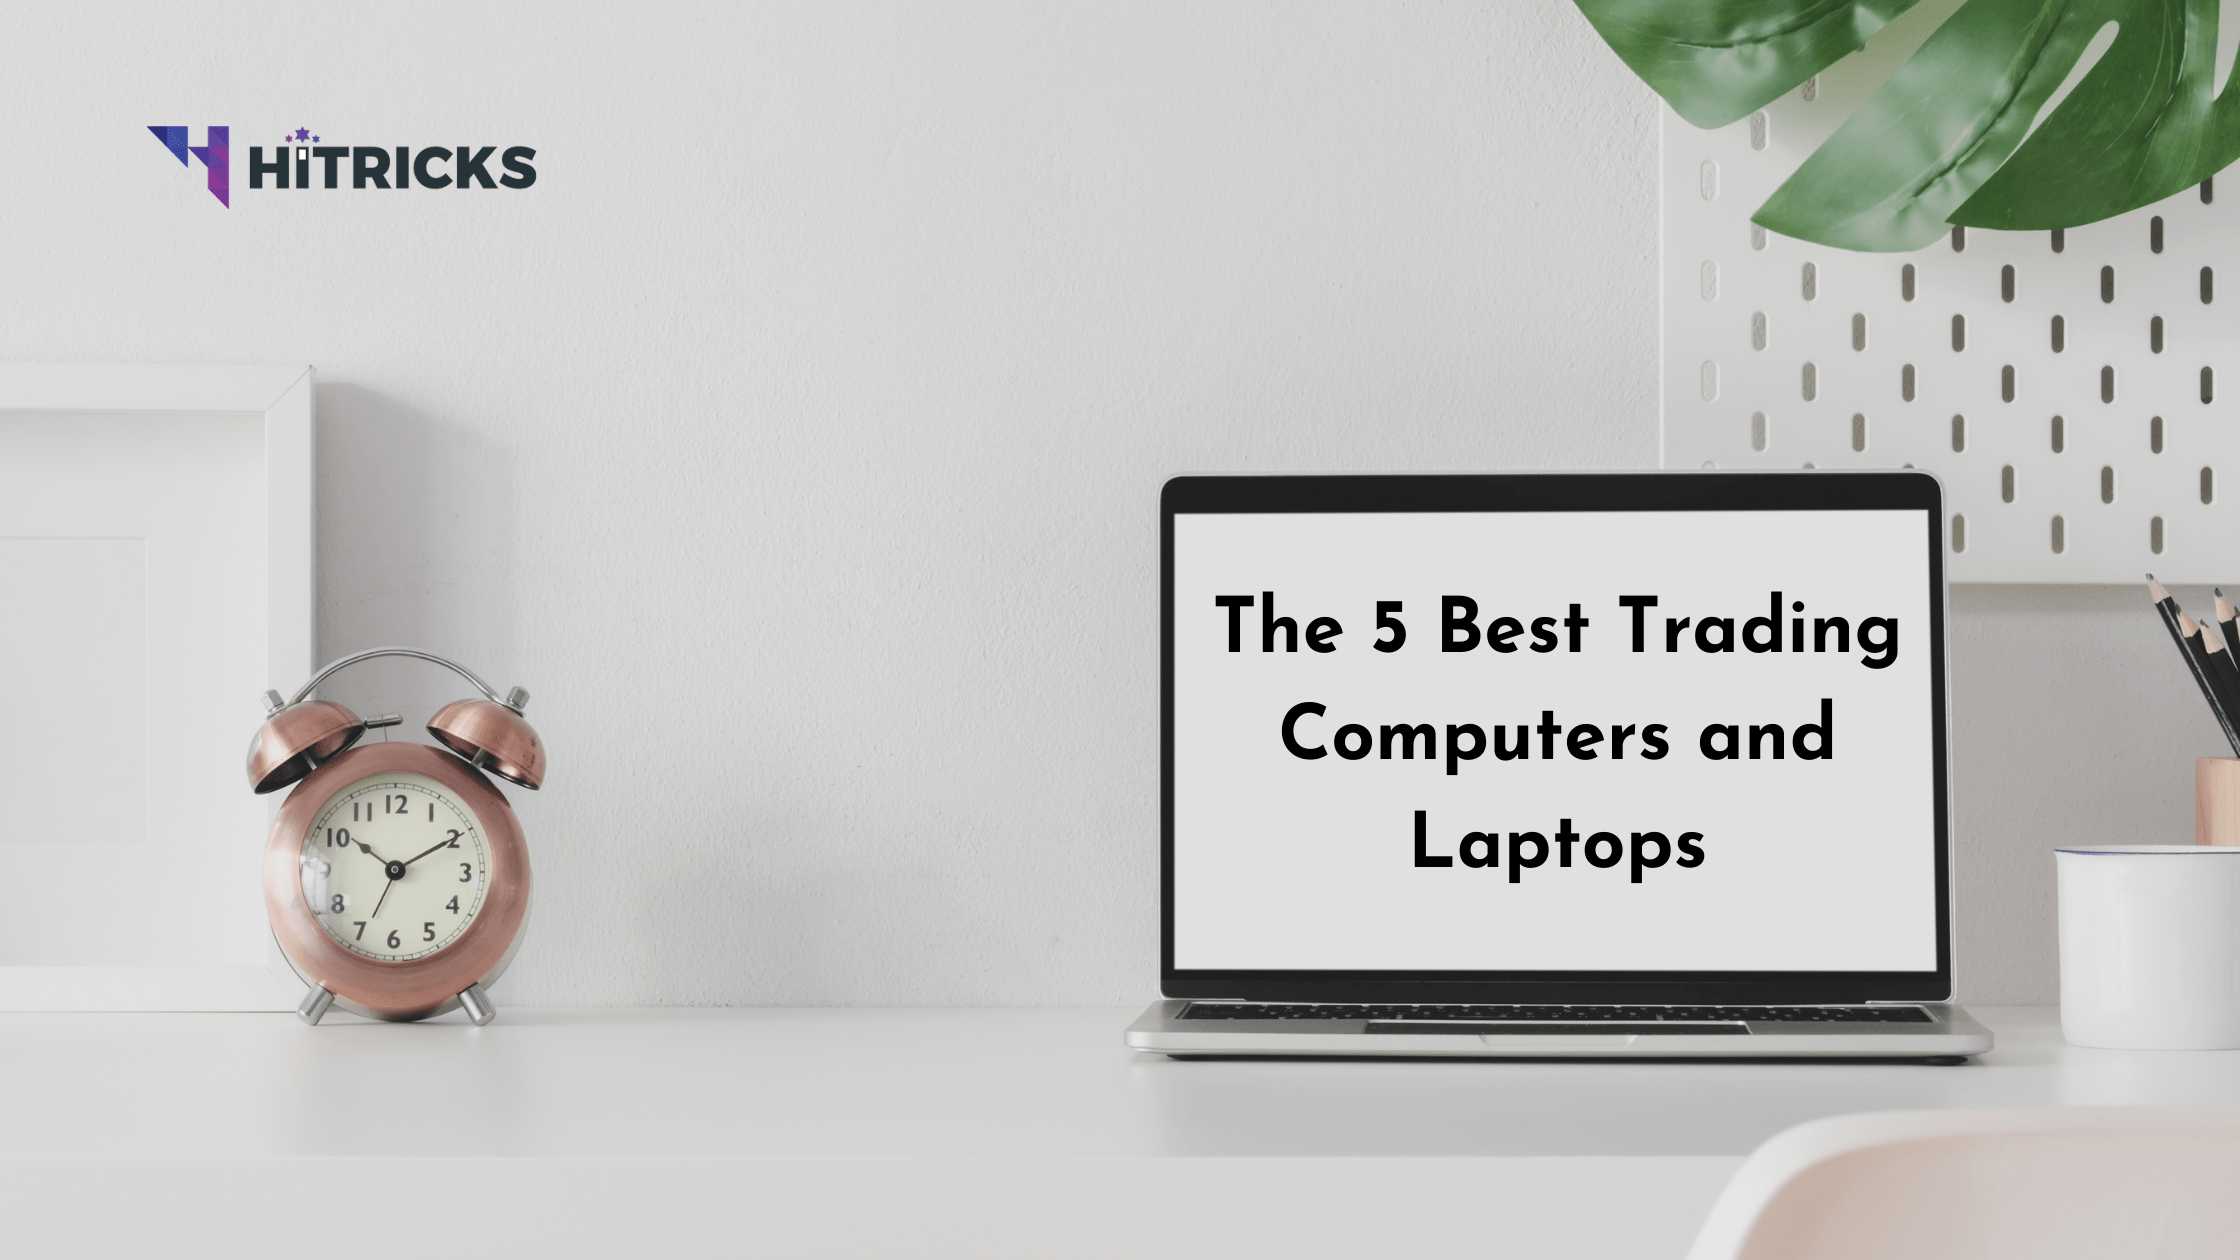 The 5 Best Trading Computers and Laptops for 2020